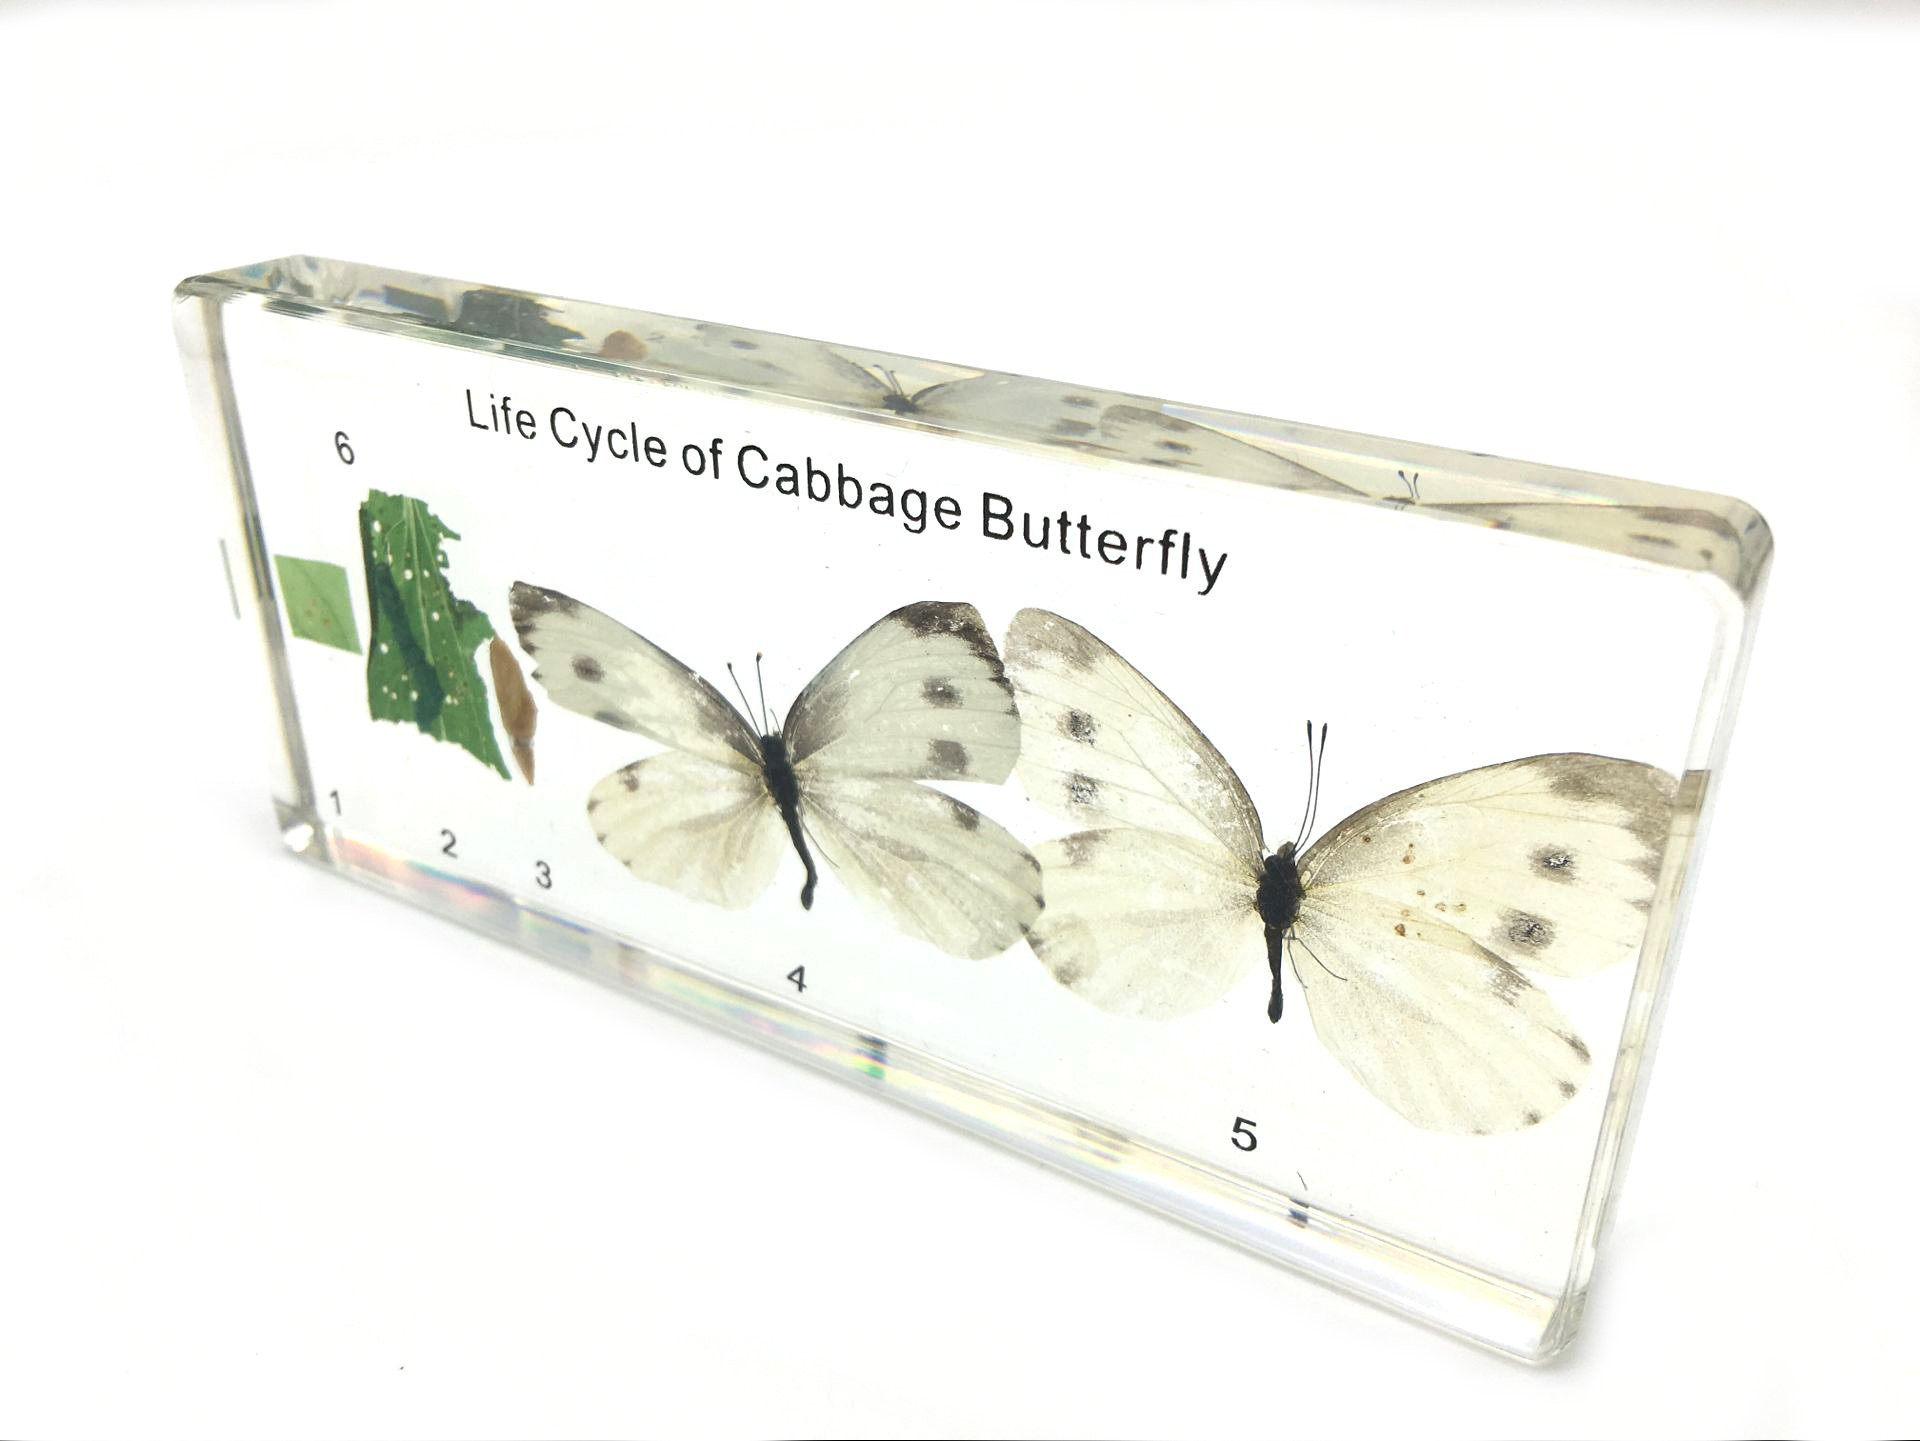 Lifecycle of a Cabbage Butterfly Paperweight Science Classroom Specimens for Science Education